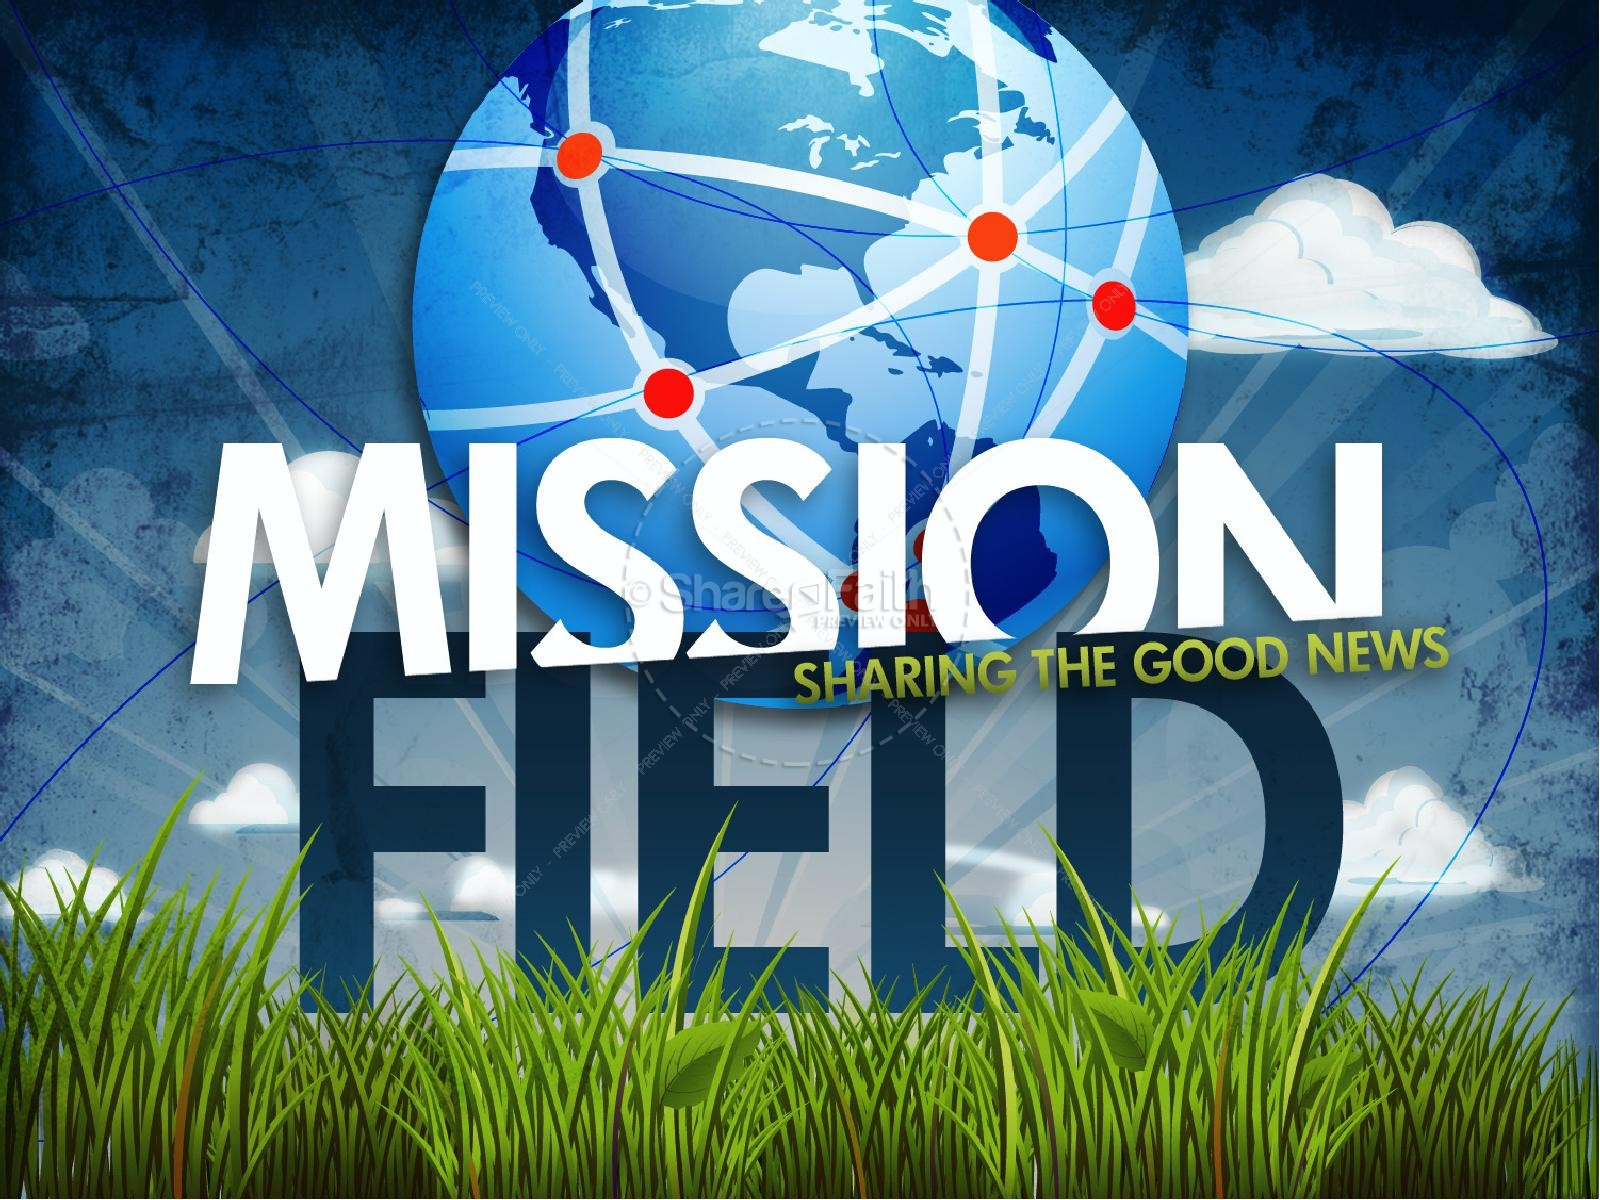 Missions PowerPoint Template For Church | PowerPoint Sermons